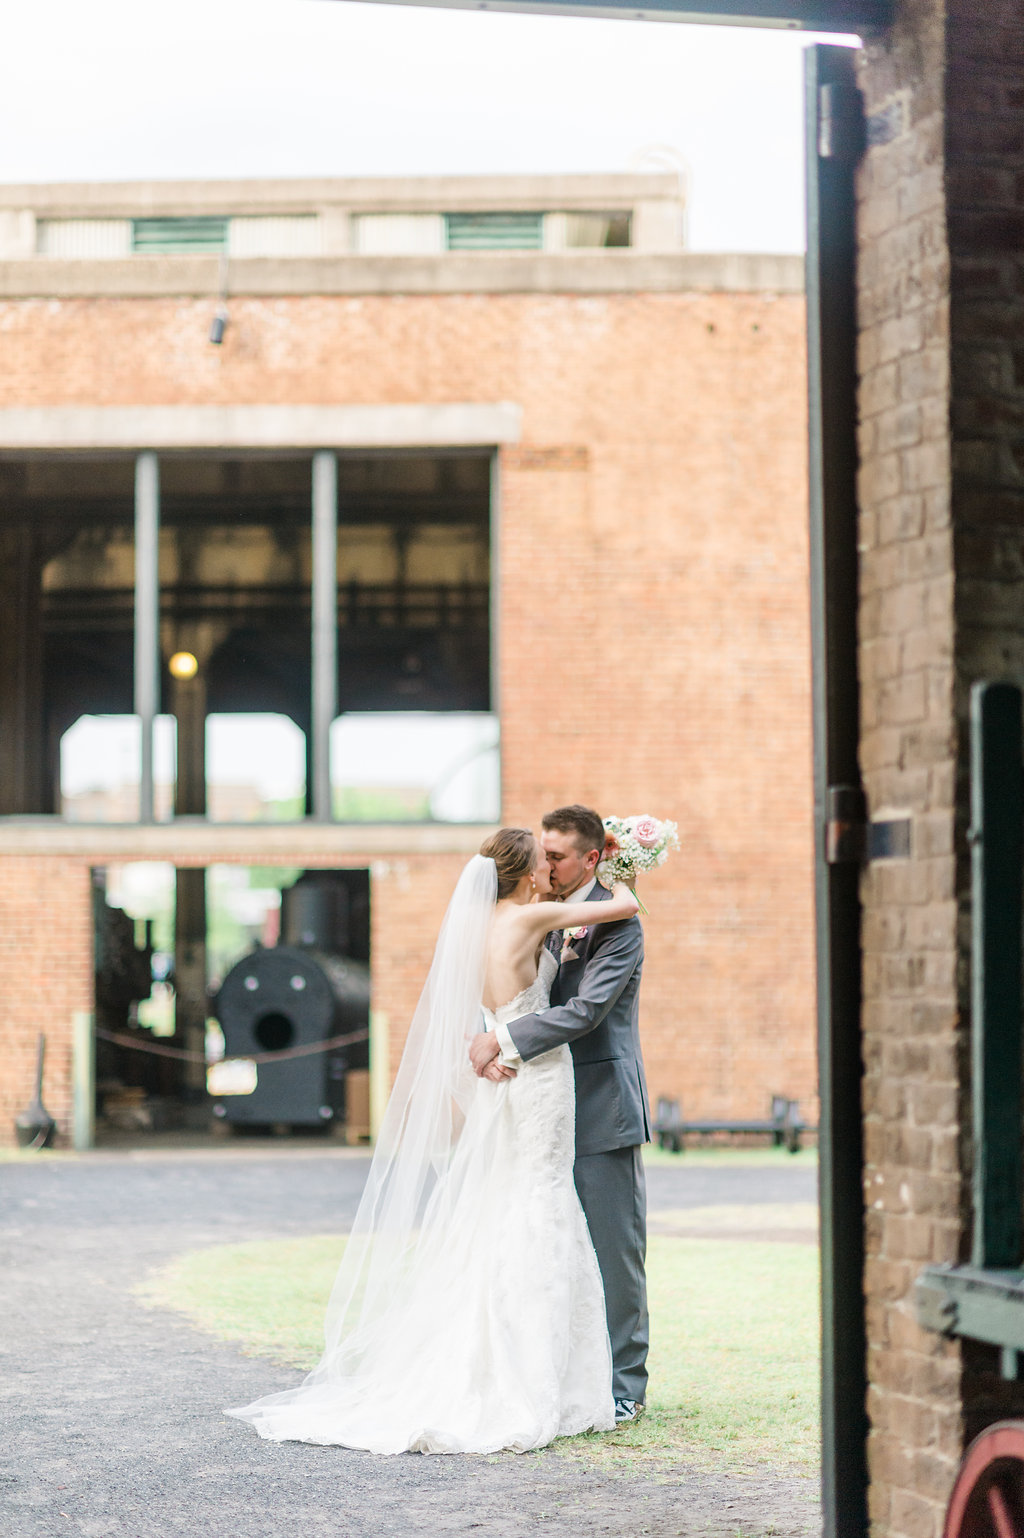 rach-lea-photography-rach-loves-troy-roundhouse-railroad-museum-wedding-ivory-and-beau-savannah-wedding-planner-savannah-weddings-savannah-florist-ivory-and-beau-bridal-boutique-succulent-blush-wedding-38.jpg